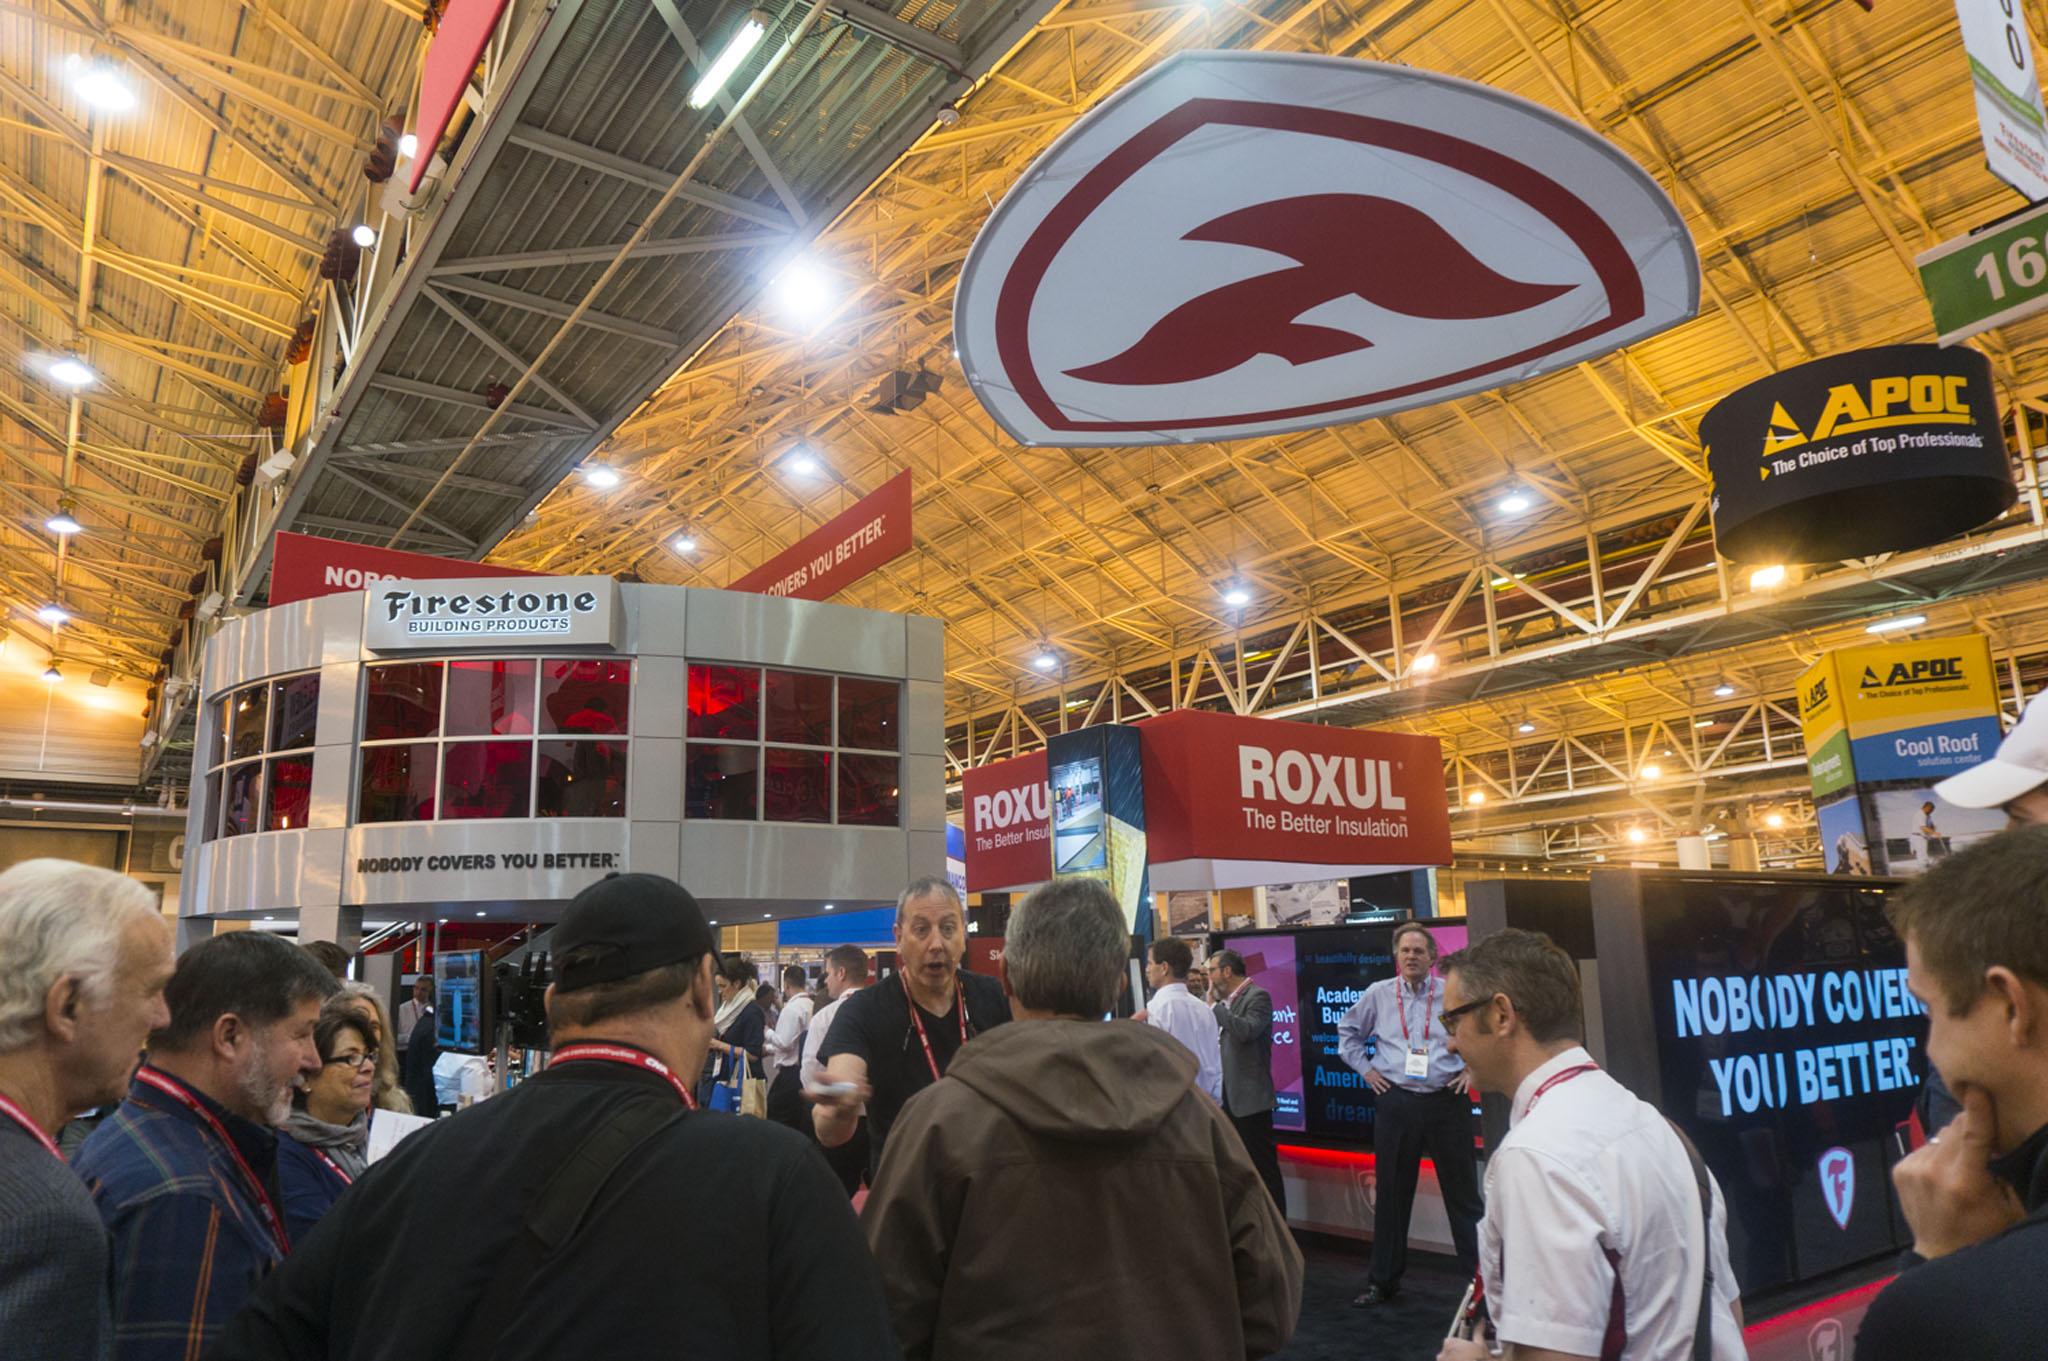 The Firestone Building Products interactive trade show booth used throughout many industry trade shows.